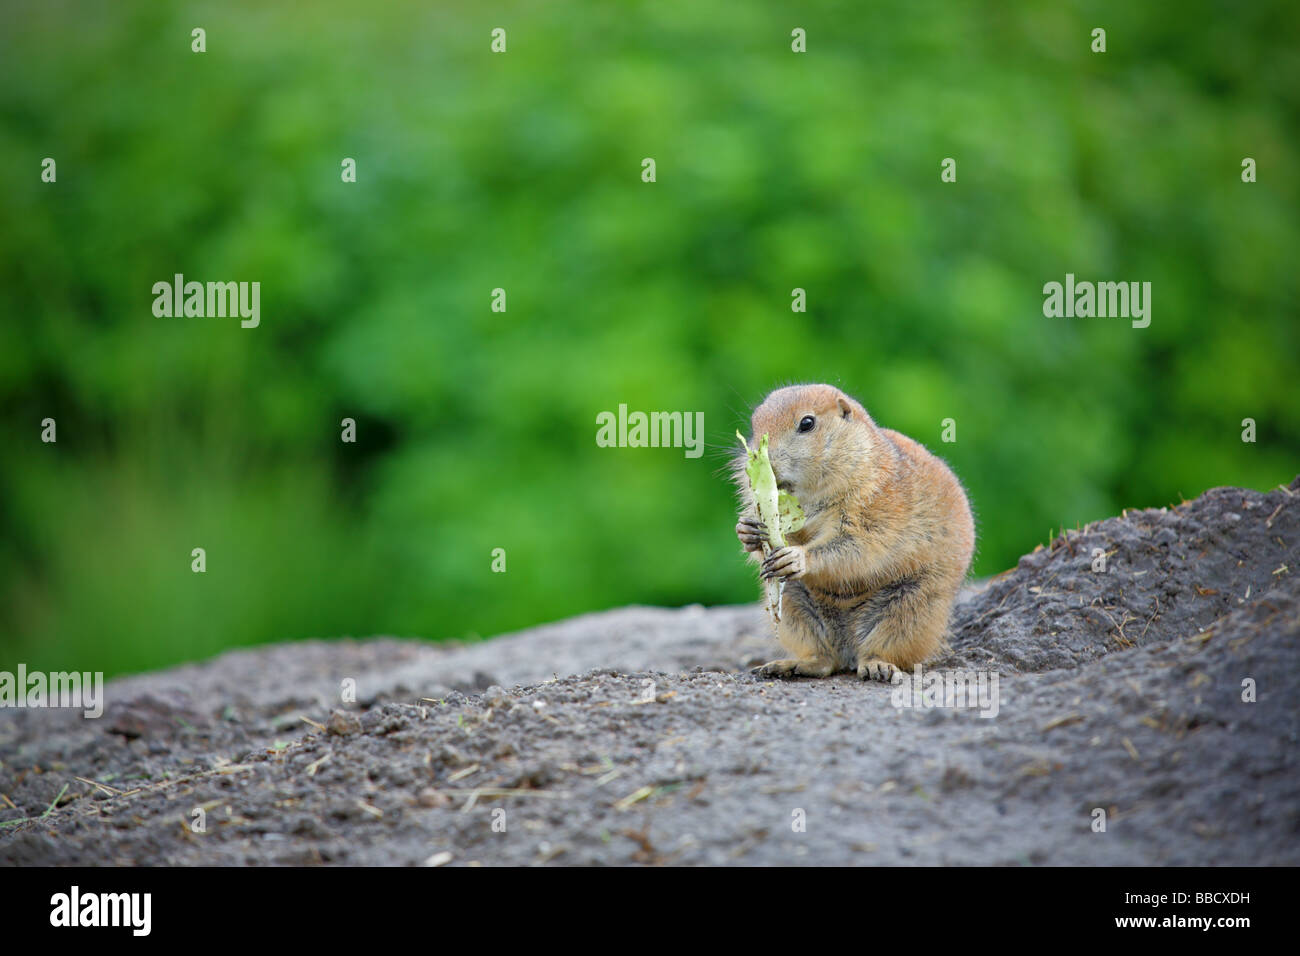 Prairie dog chewing food - Stock Image